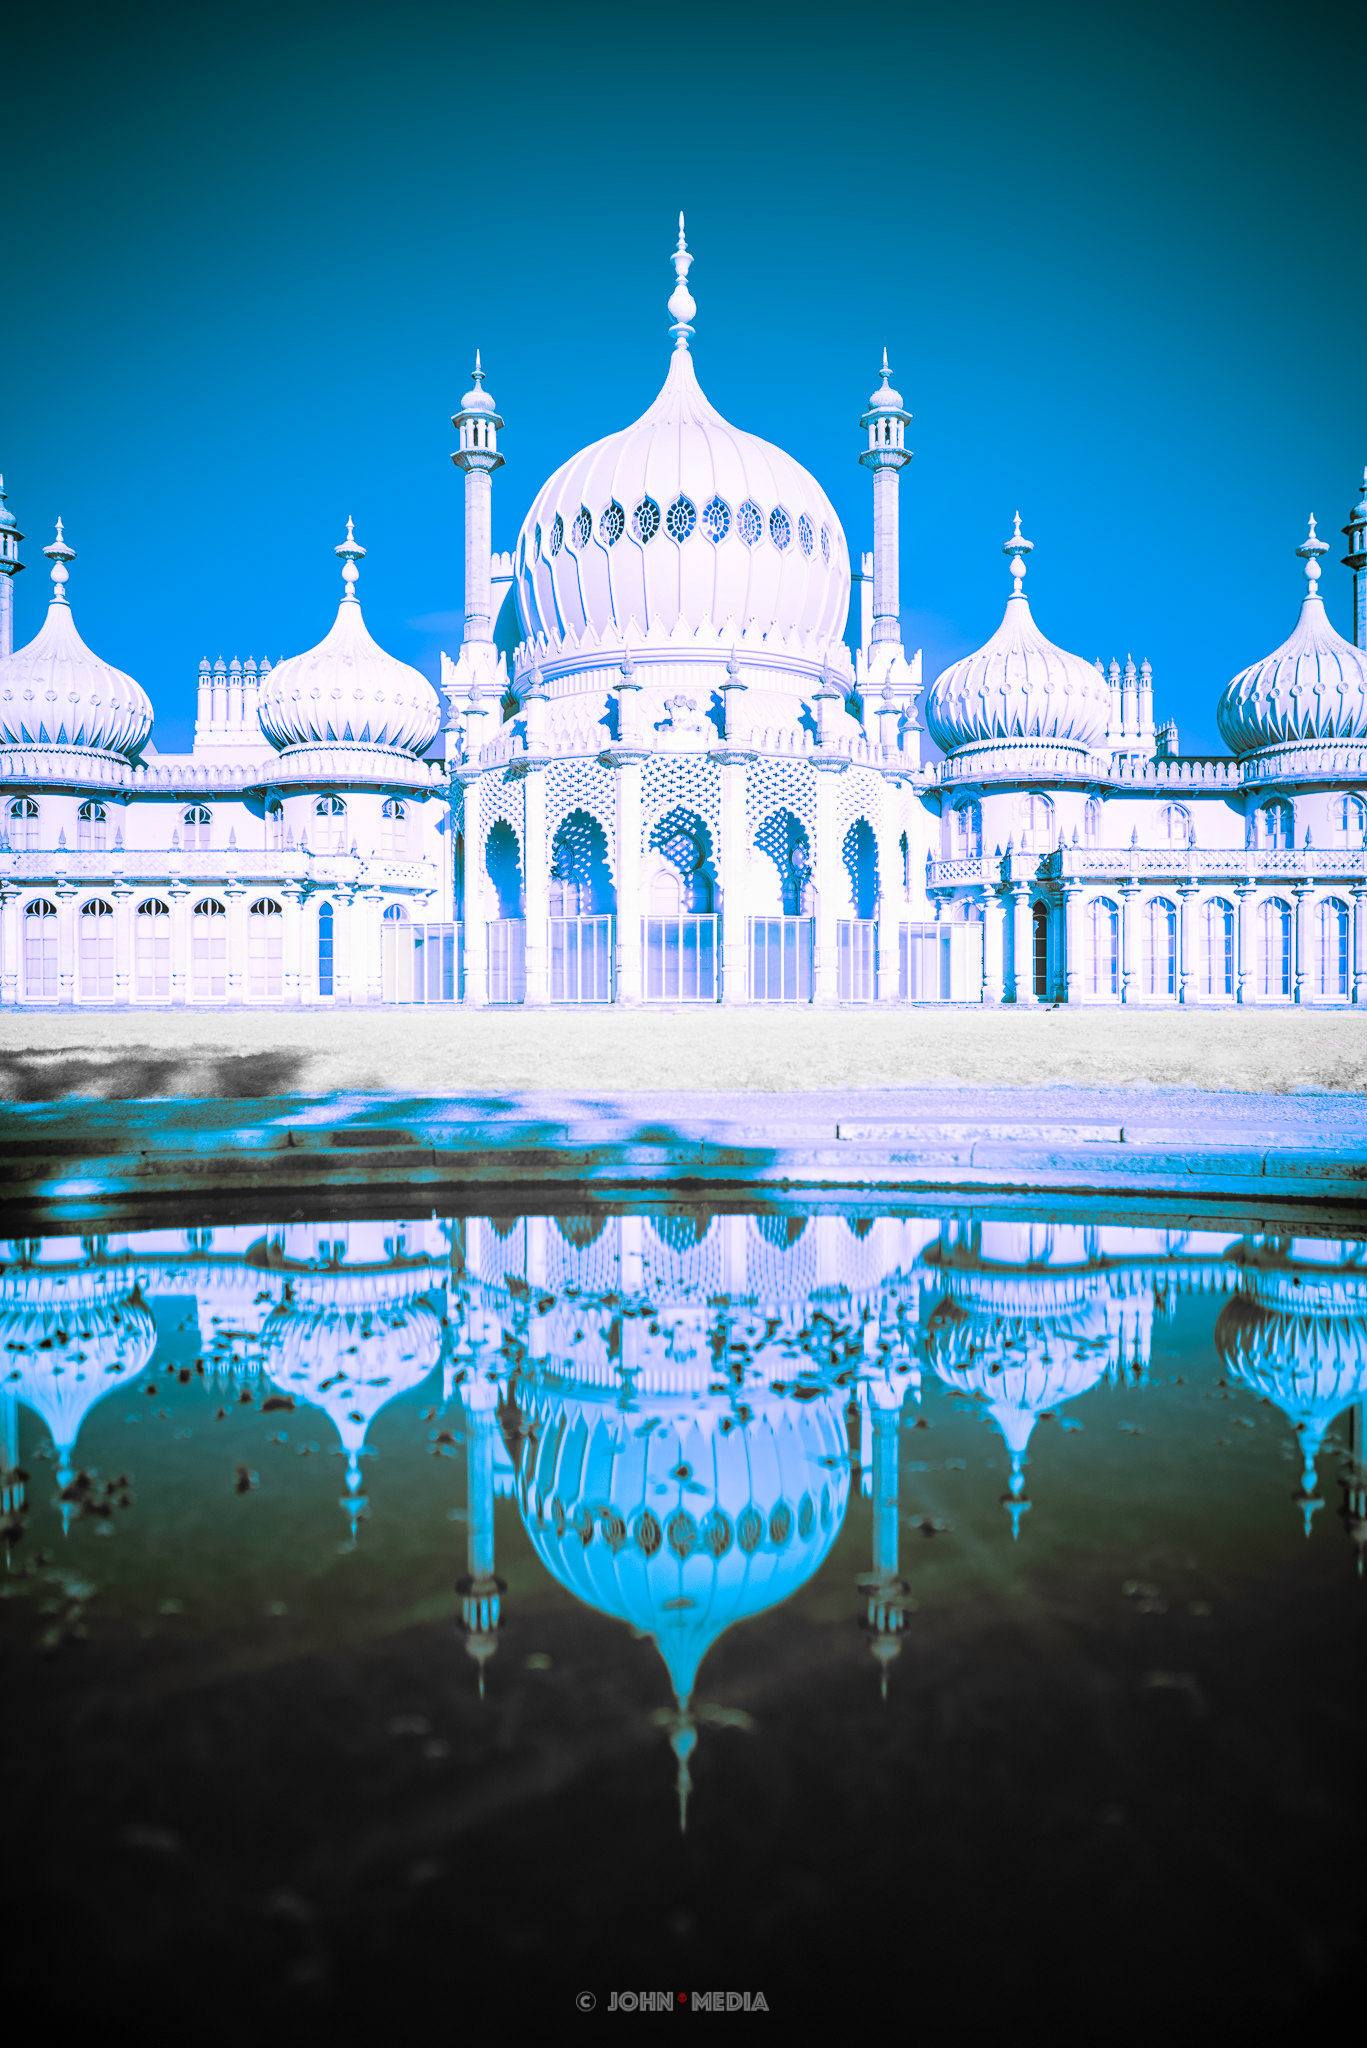 Brighton Pavilion in infra red